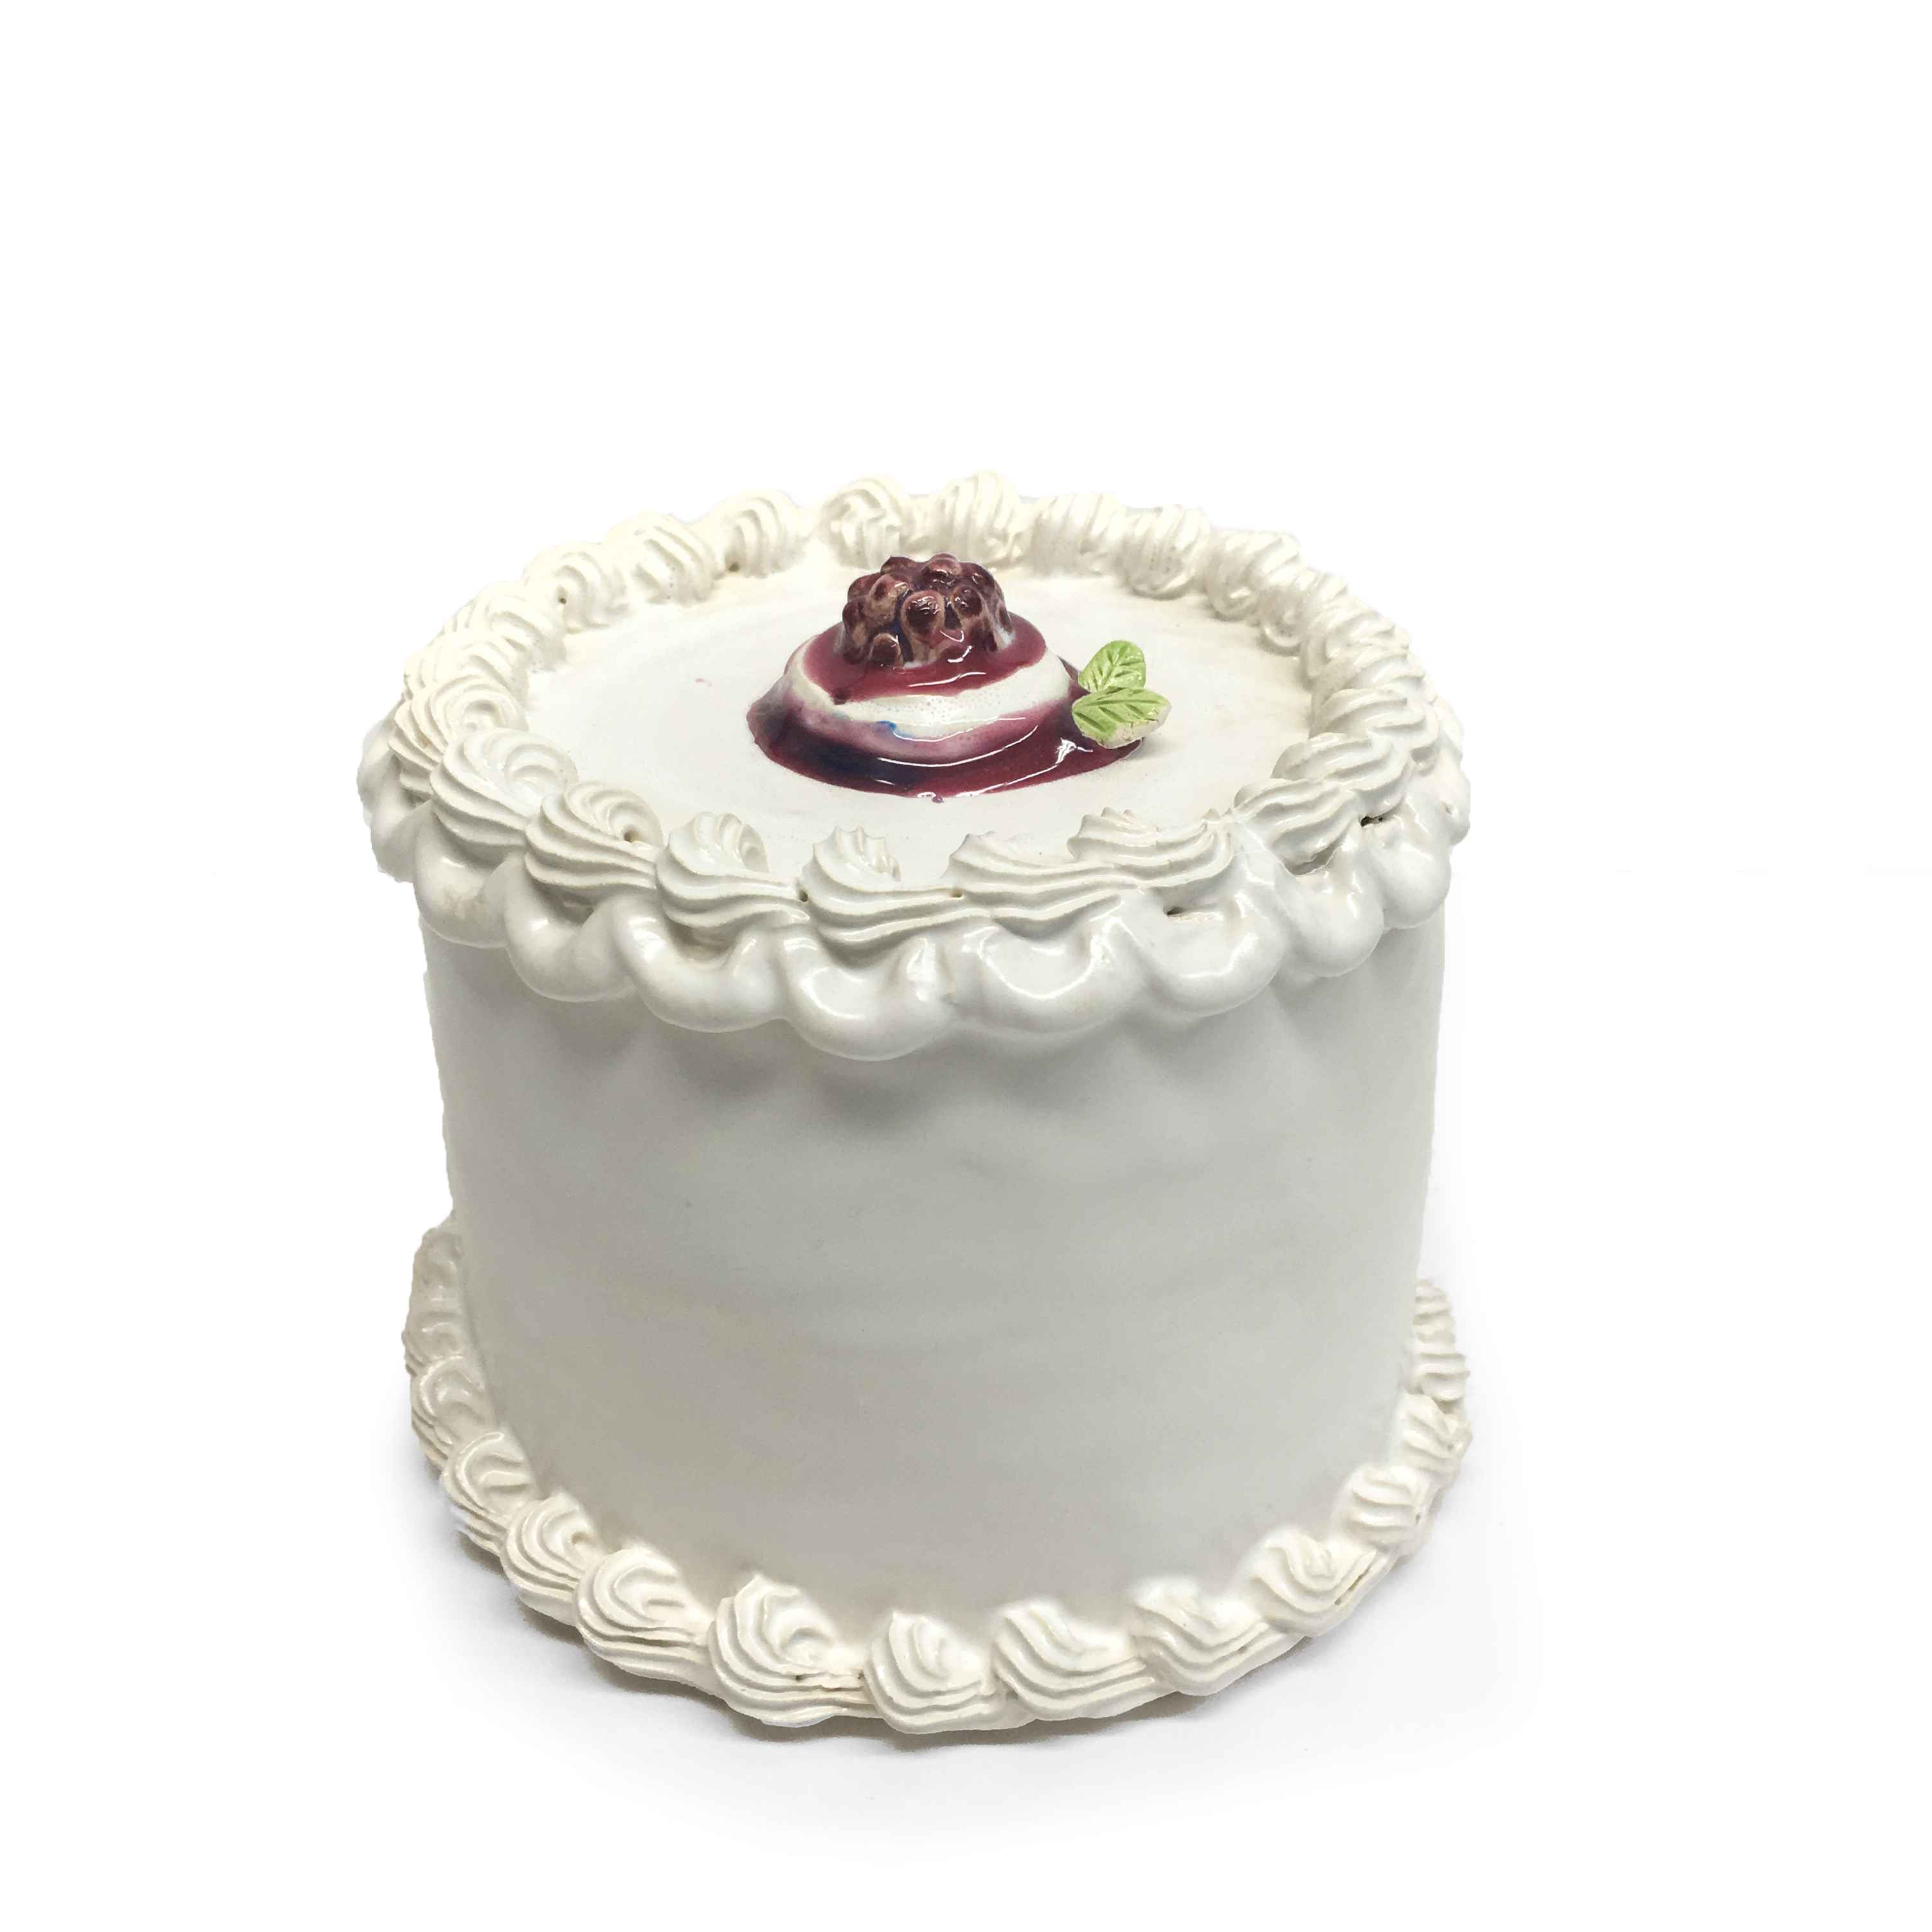 Raspberry Topped Cake represented  by  Jeff Nebeker